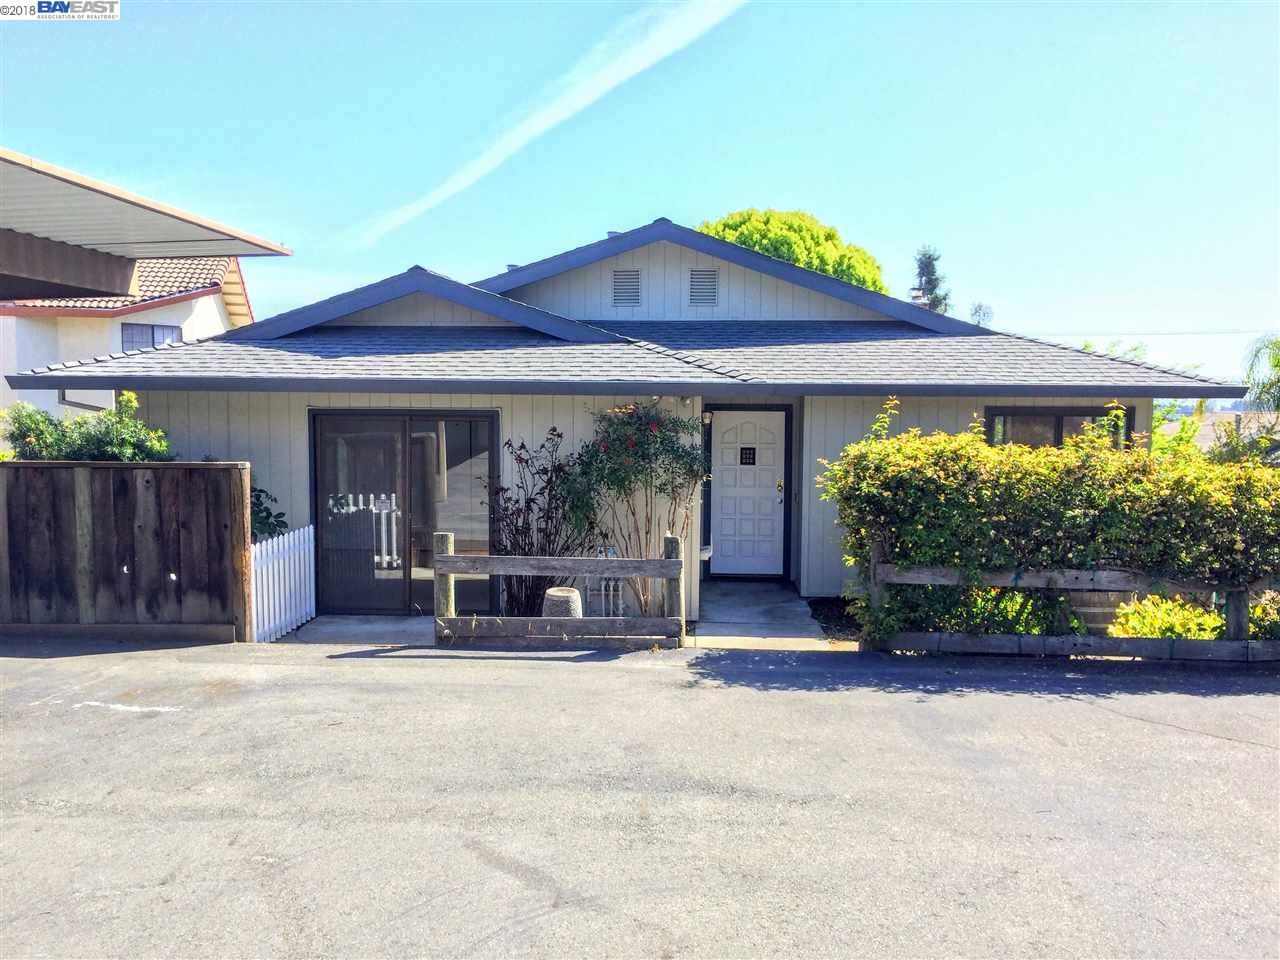 4678 Heyer Ave | CASTRO VALLEY | 2016 | 94546